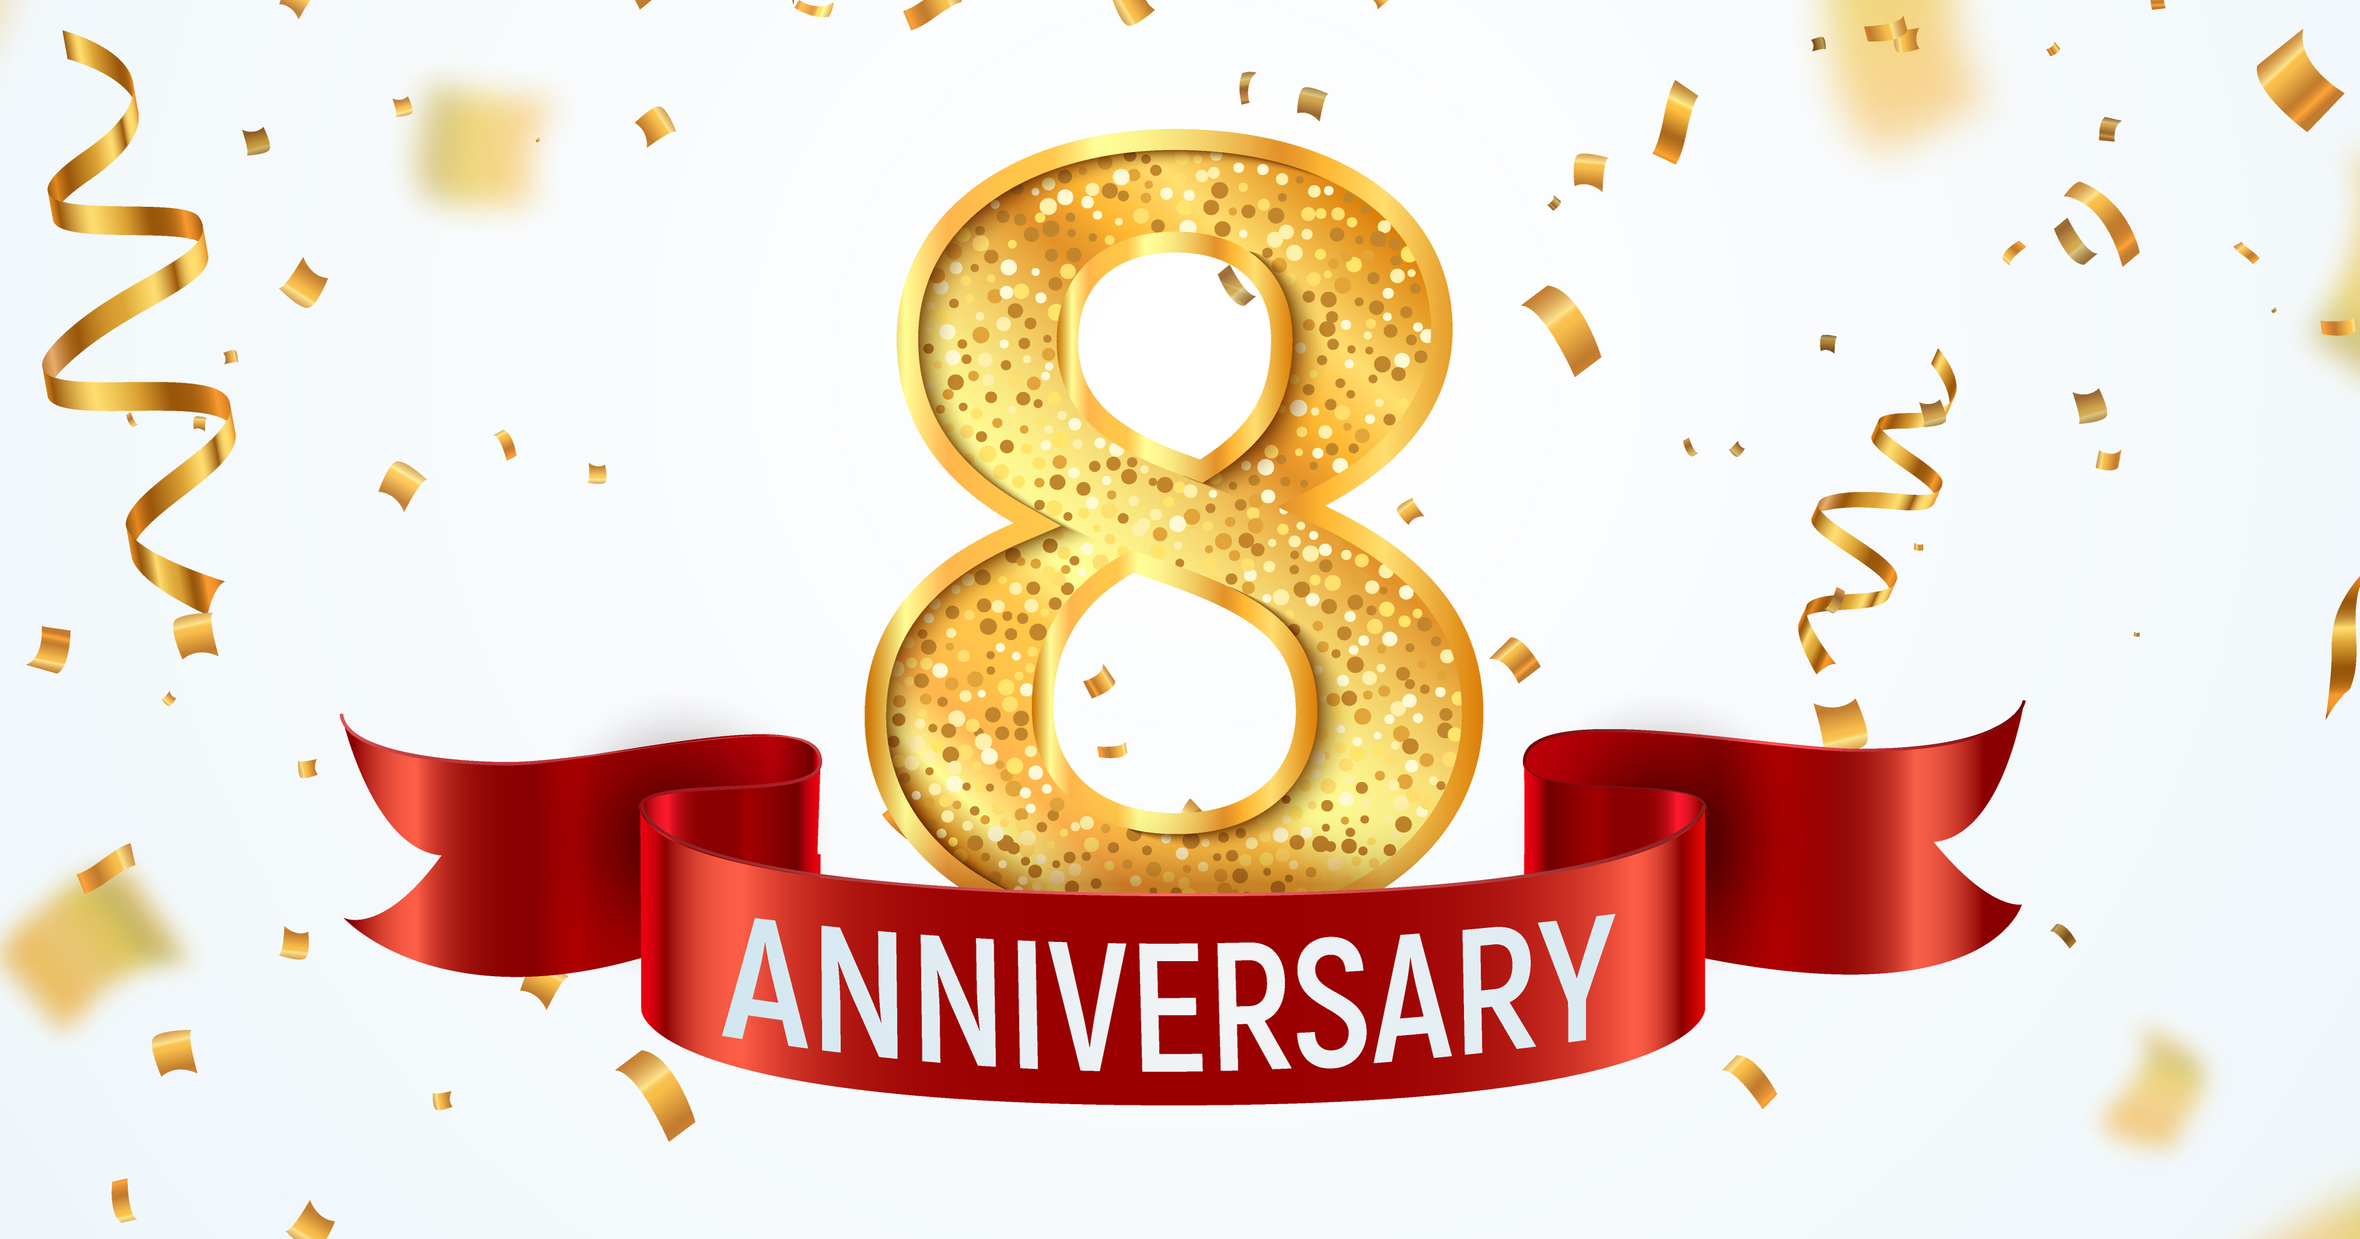 Palisade Just Celebrated Our 8th Anniversary | Palisade Compliance